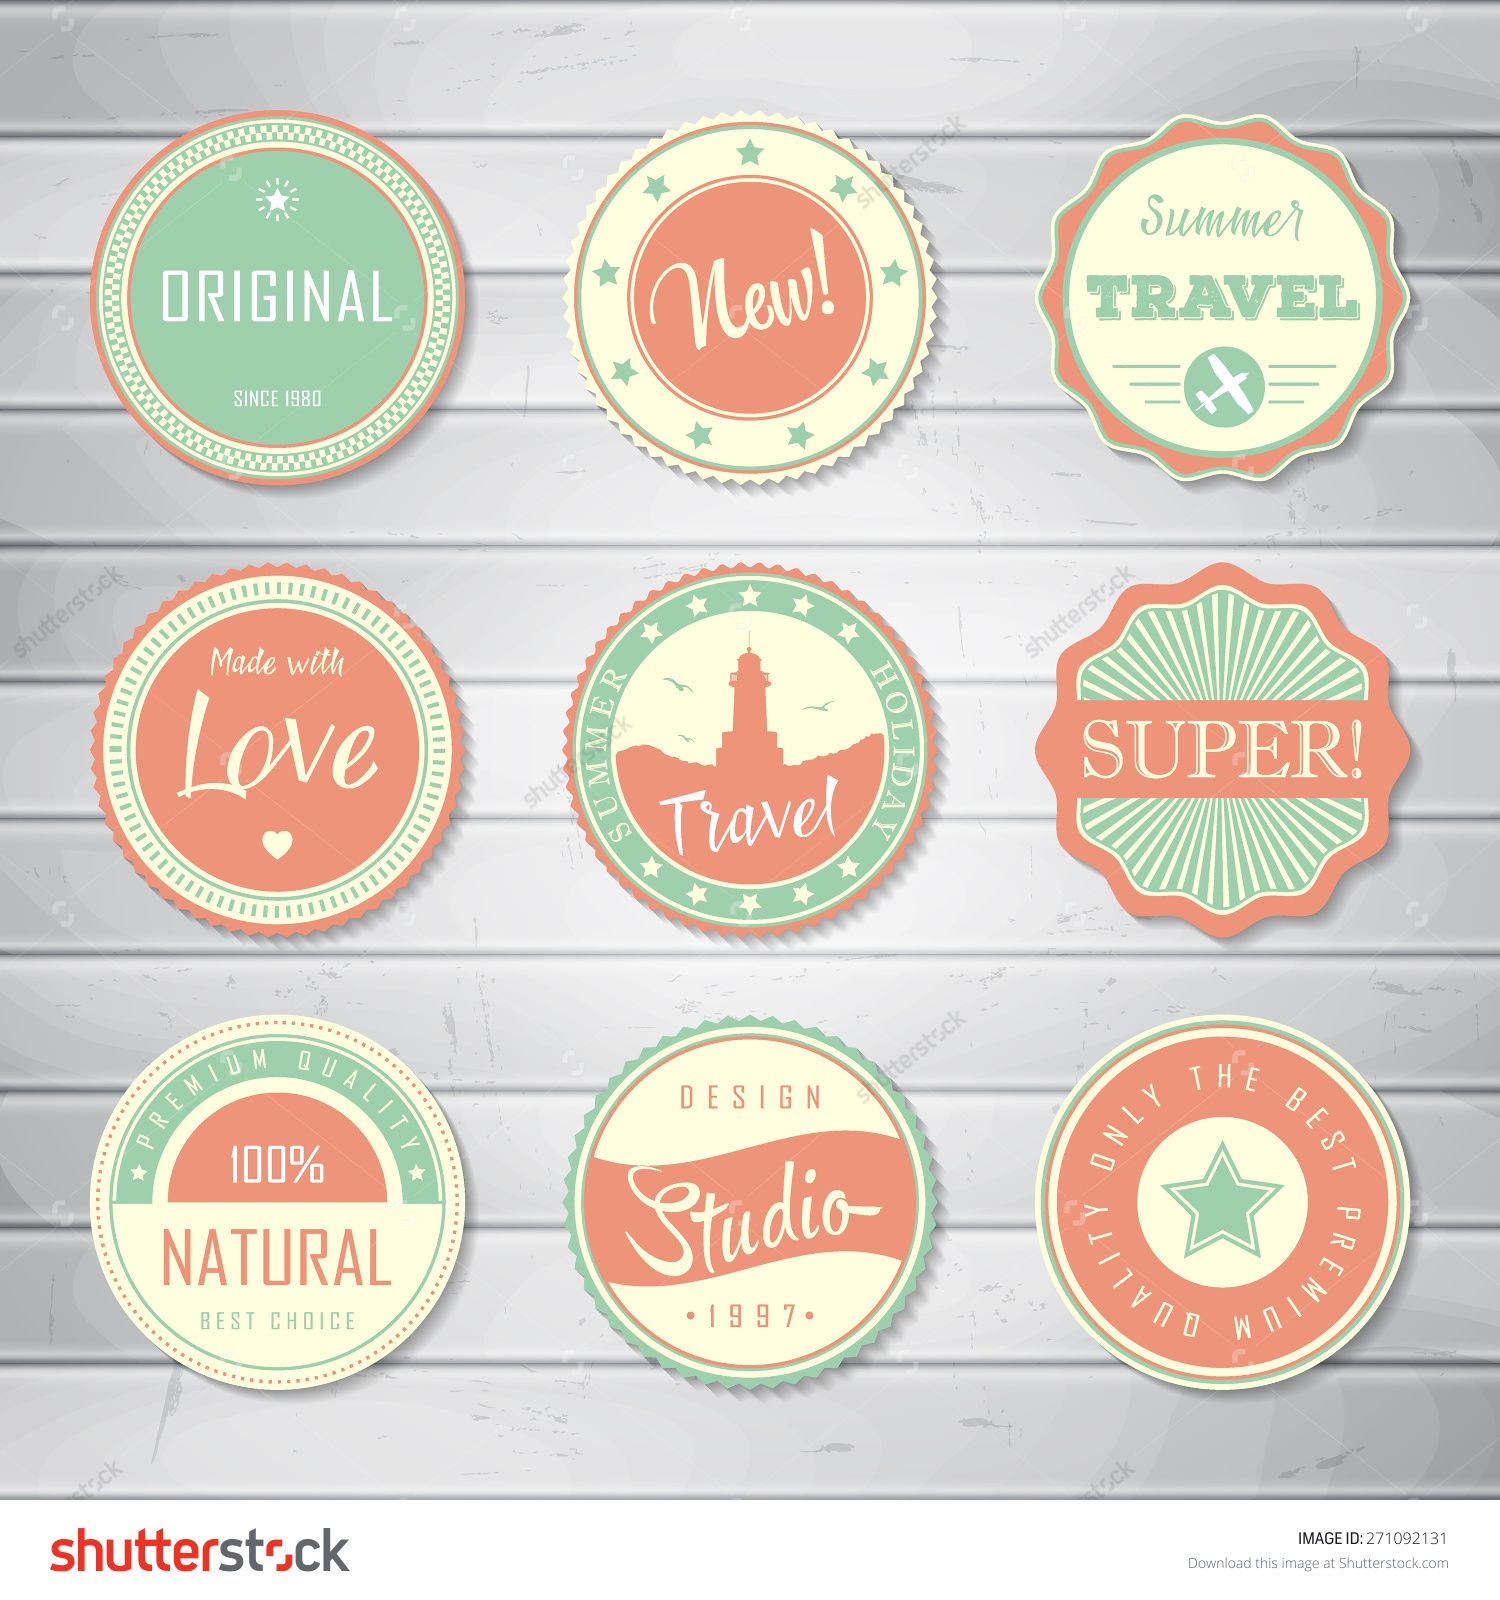 Vintage Labels Template Set Super Original New Best Choice